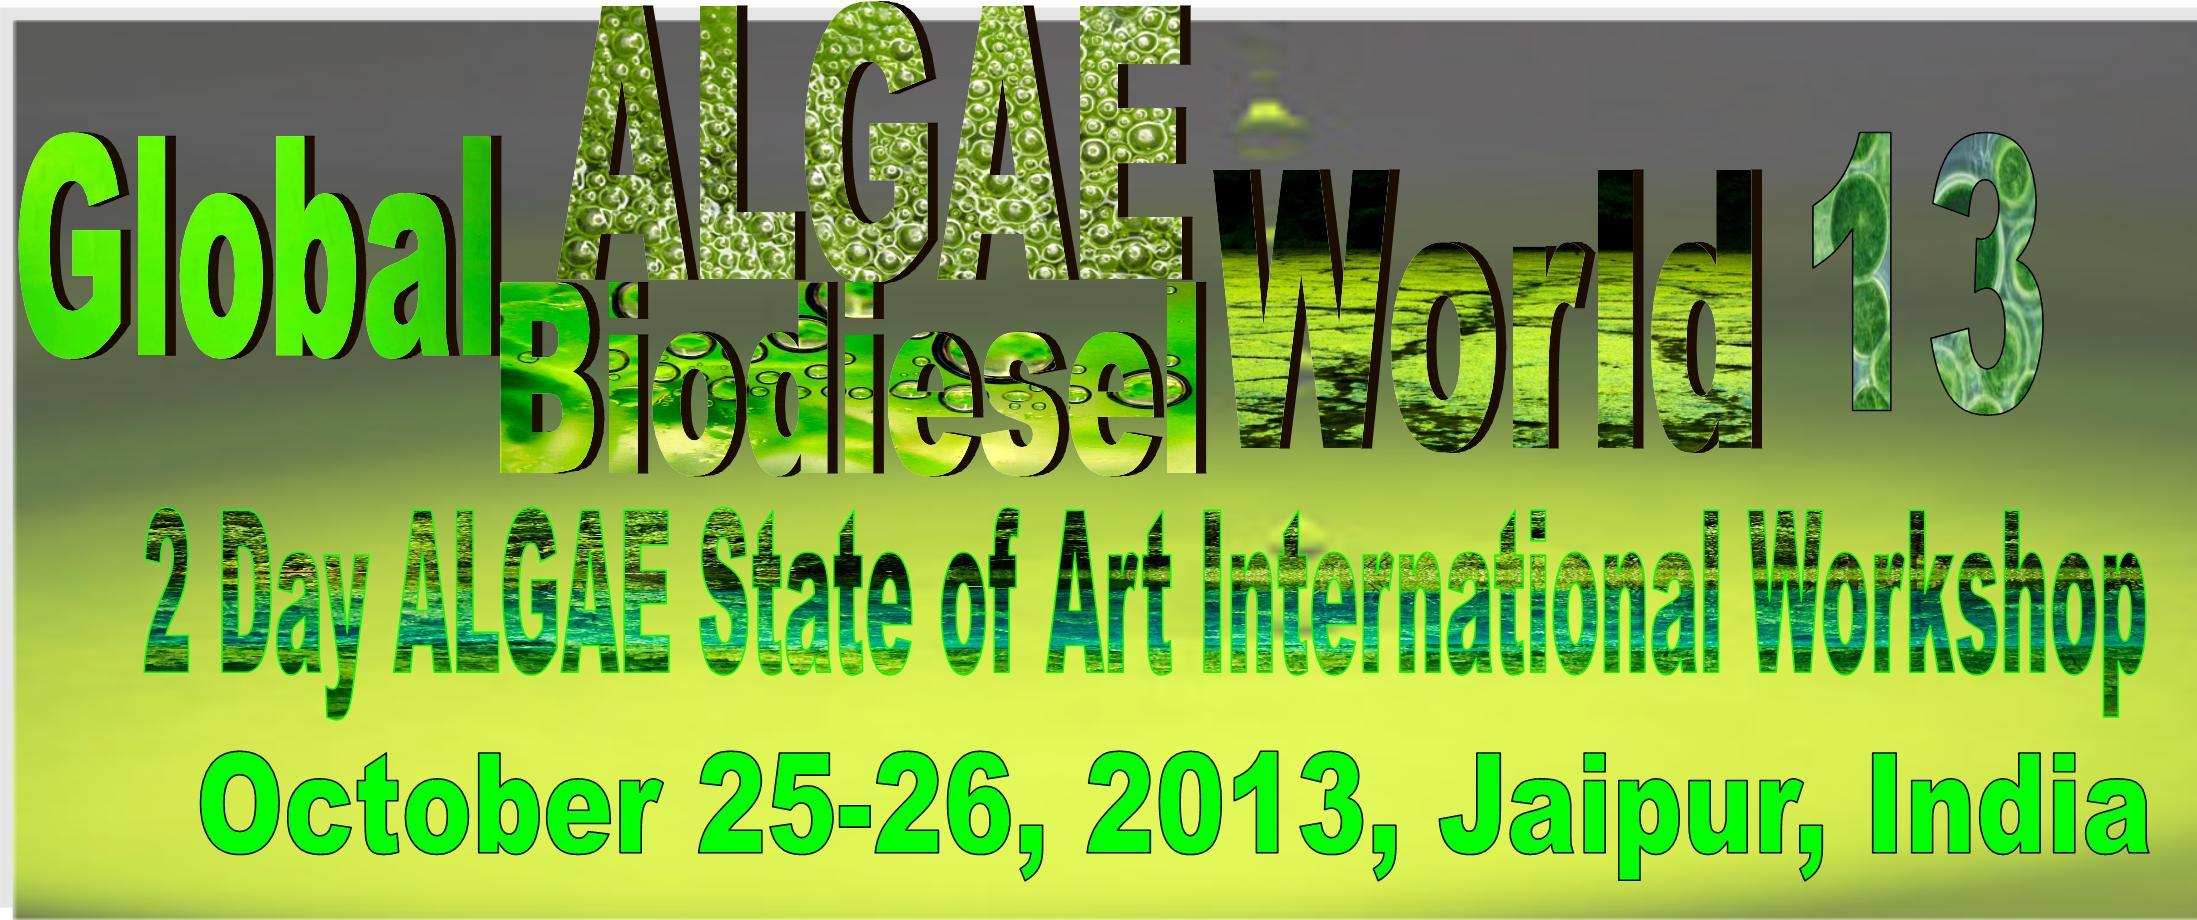 algae biodiesel world 2013